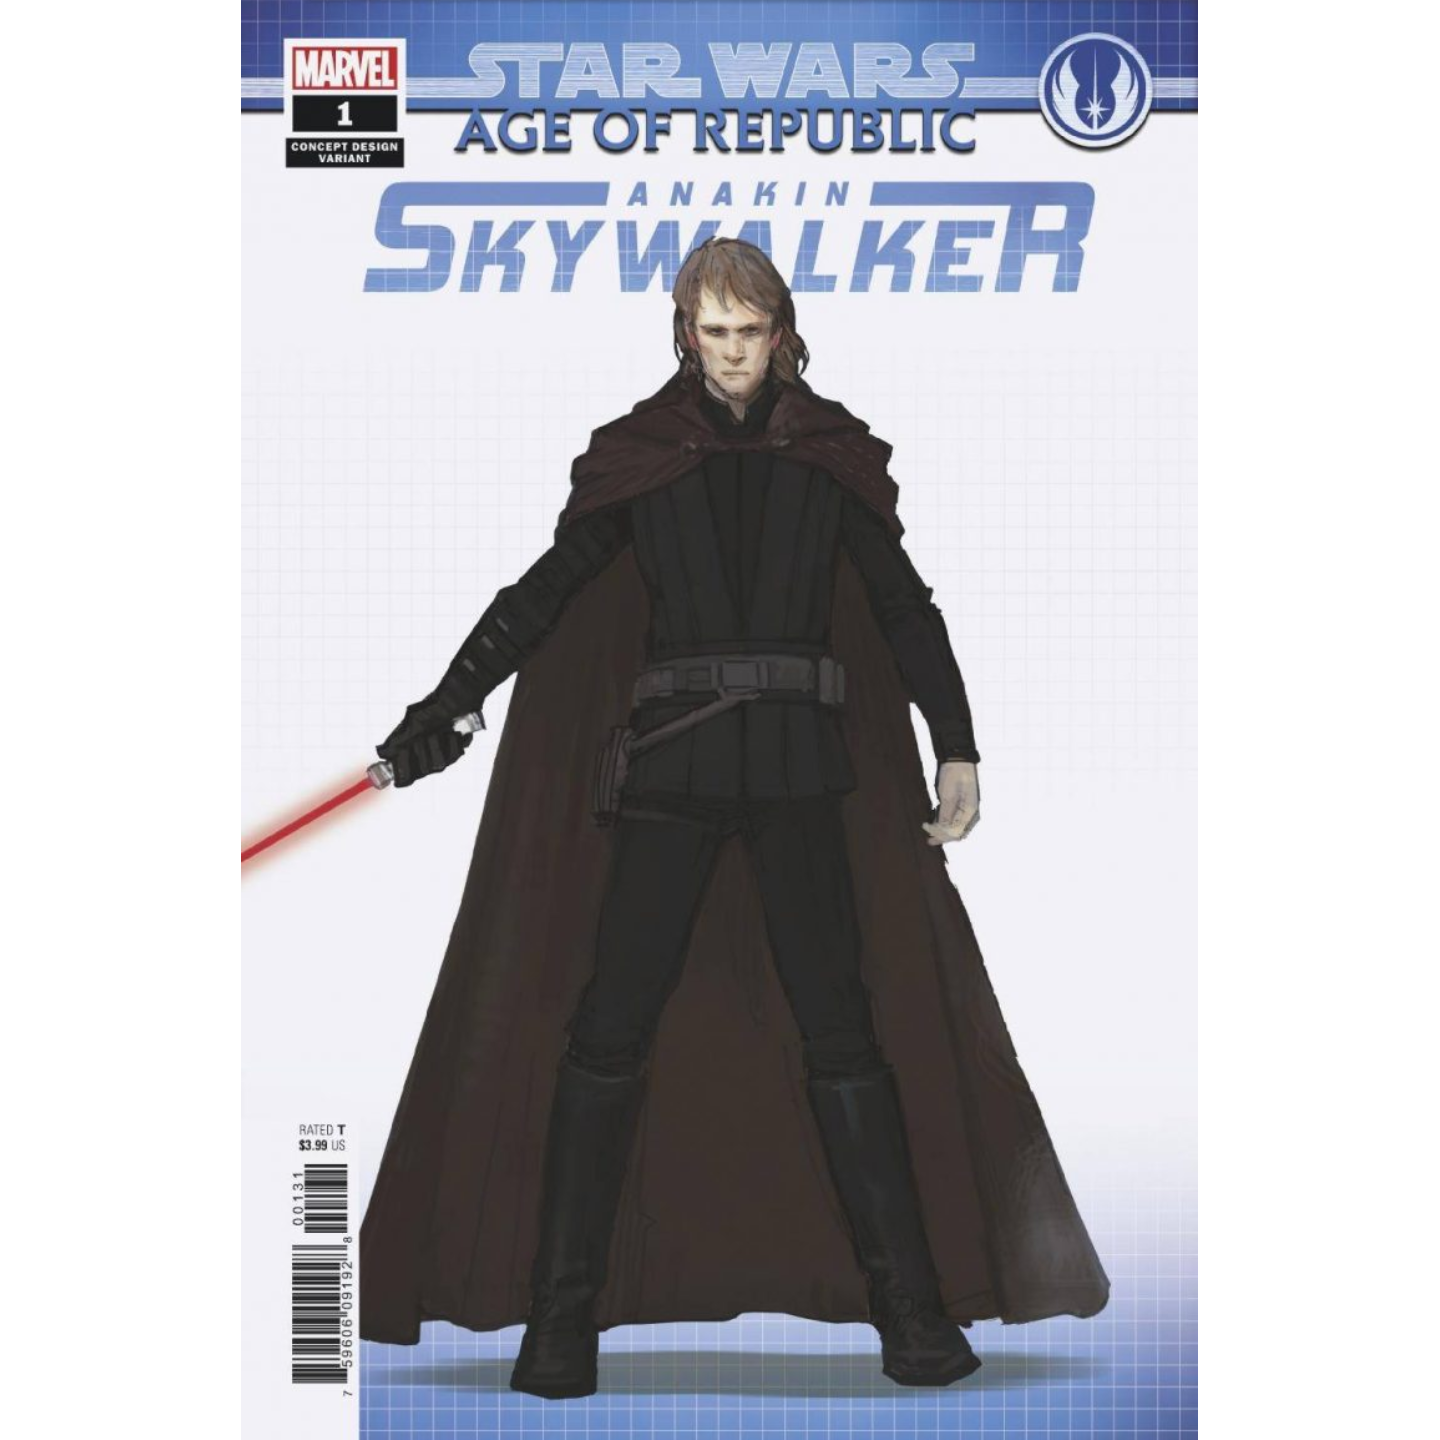 STAR WARS: AGE OF THE REPUBLIC - ANAKIN SKYWALKER - CONCEPT VAR